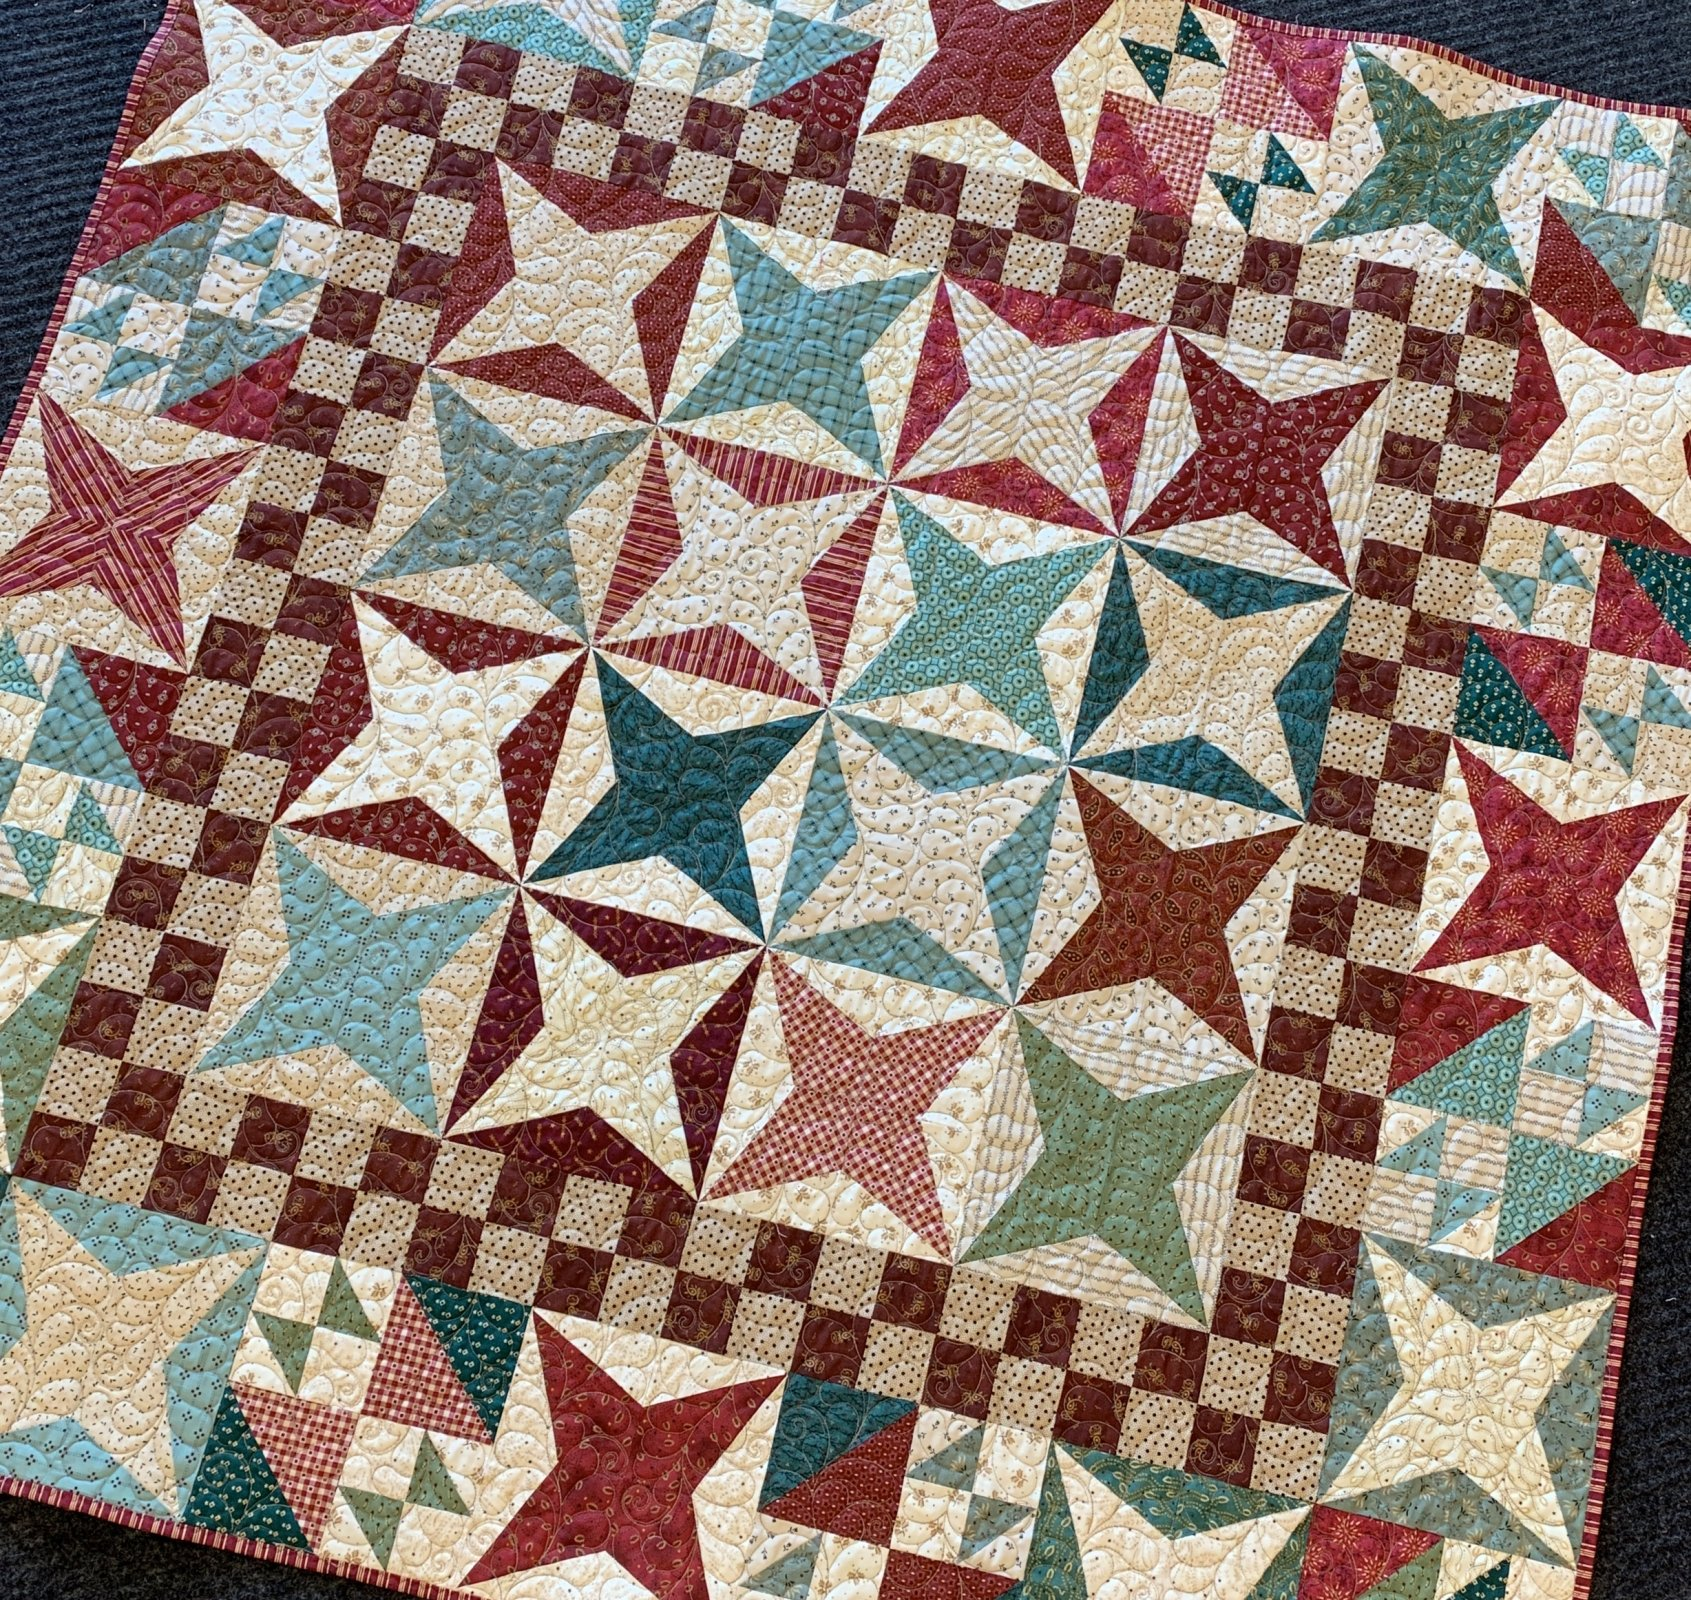 Liberty Star Memorable Times Quilt 56.5x56.5